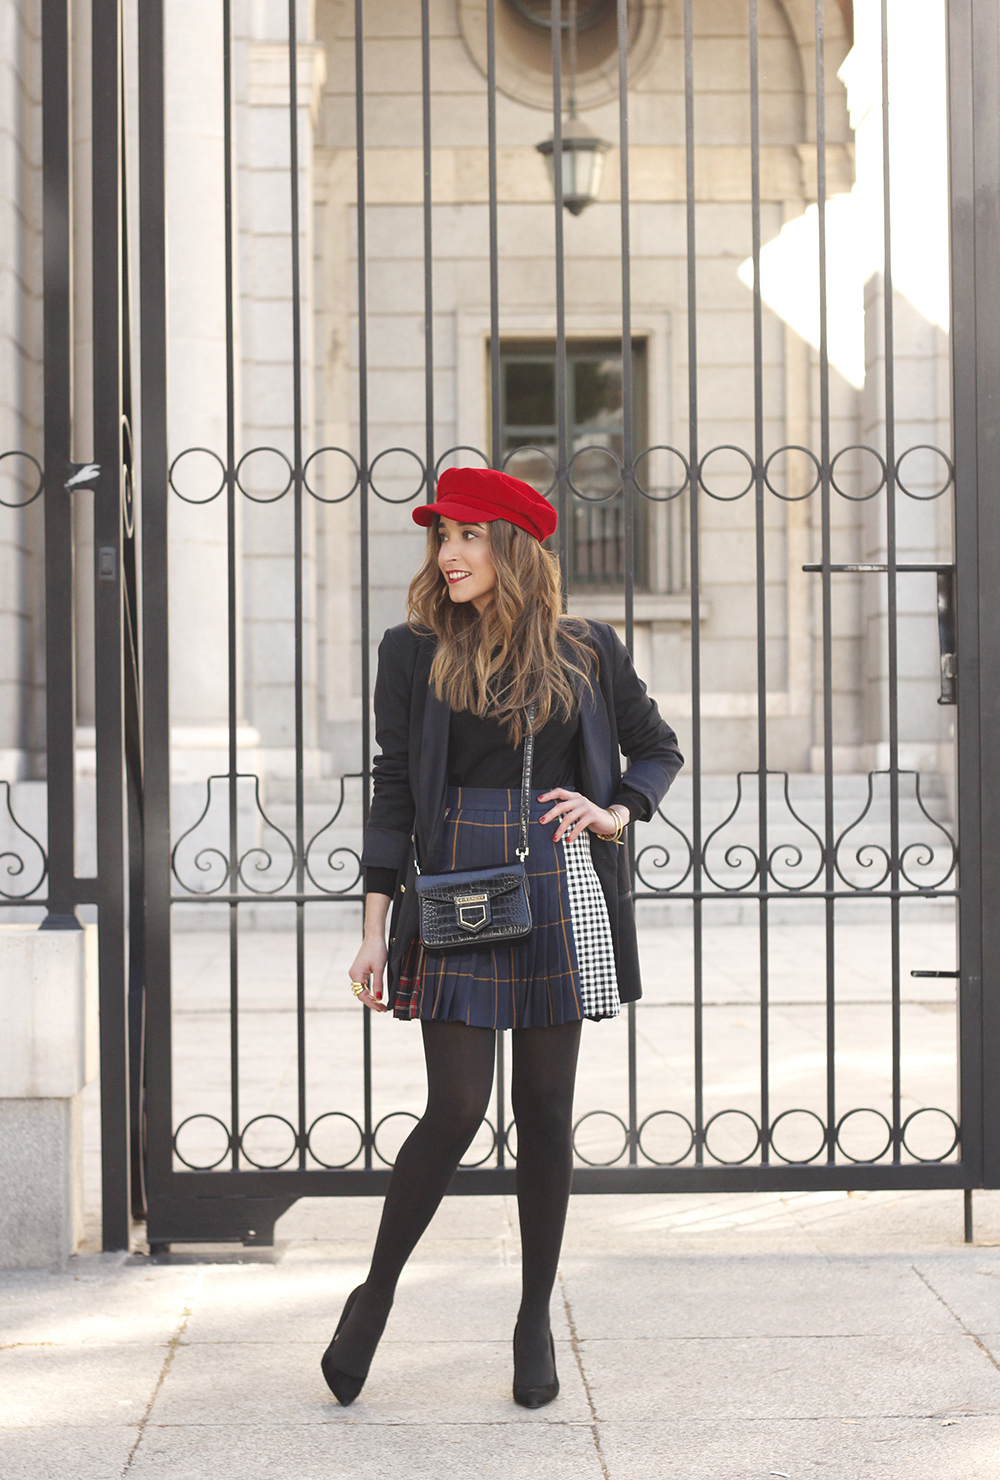 pleated skirt Scottish print Vichy print red navy cap givenchy bag winter outfit falda de tablas look invierno 20181